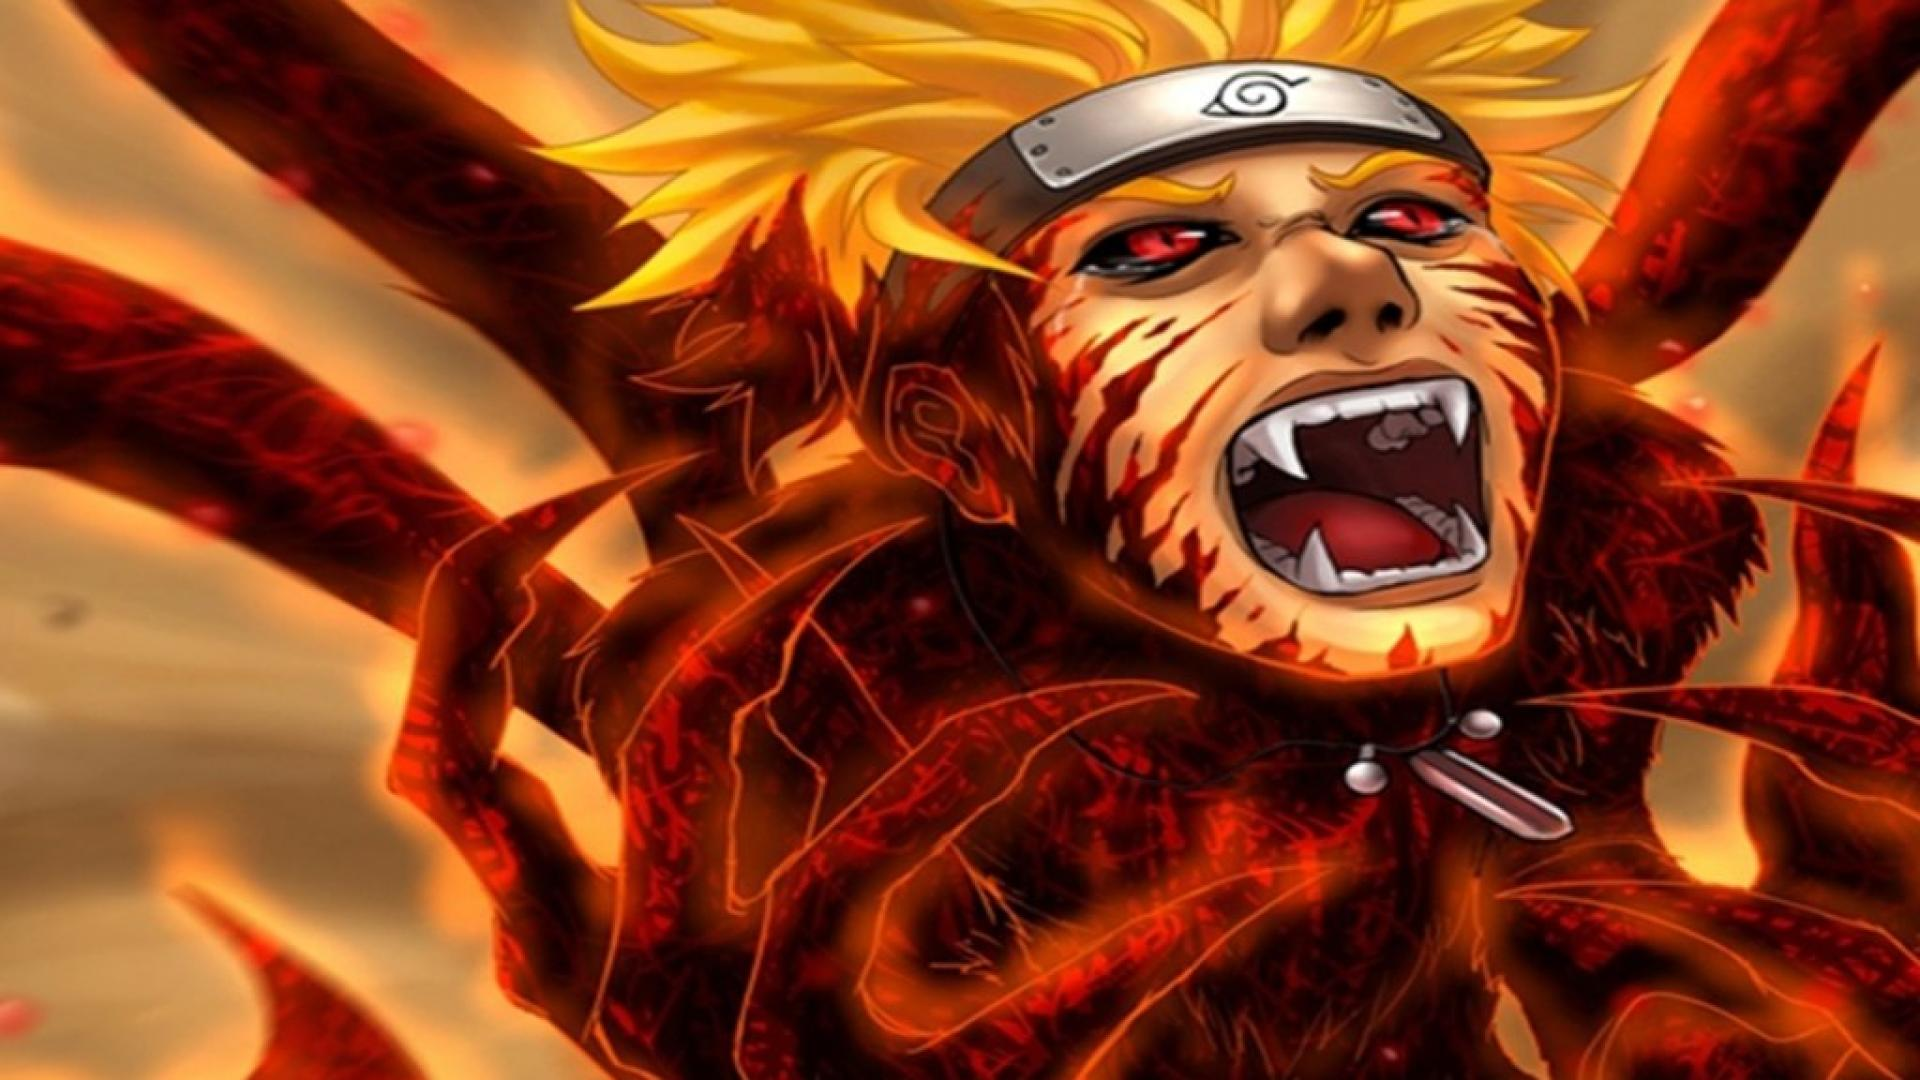 Download Wallpaper Naruto Tablet - download-naruto-wallpapers-6  Pictures.jpg